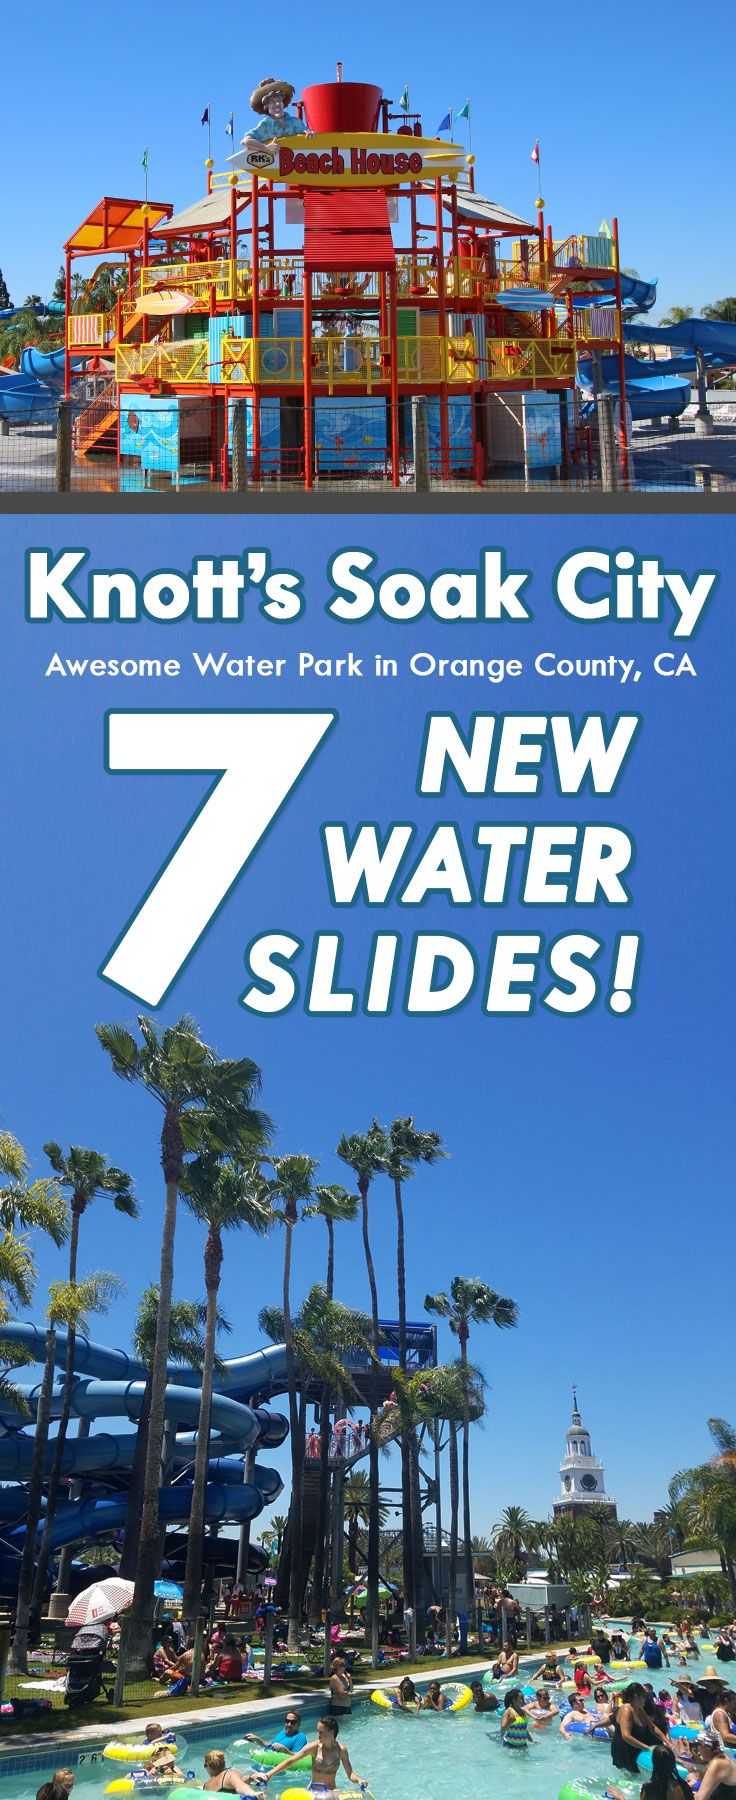 Knott's Soak City Water Park in Buena Park. Across the street from Knott's Berry Farm in Orange County California.  Perfect SoCal amusement park for a trip to SoCal!  Highlights Along the Way